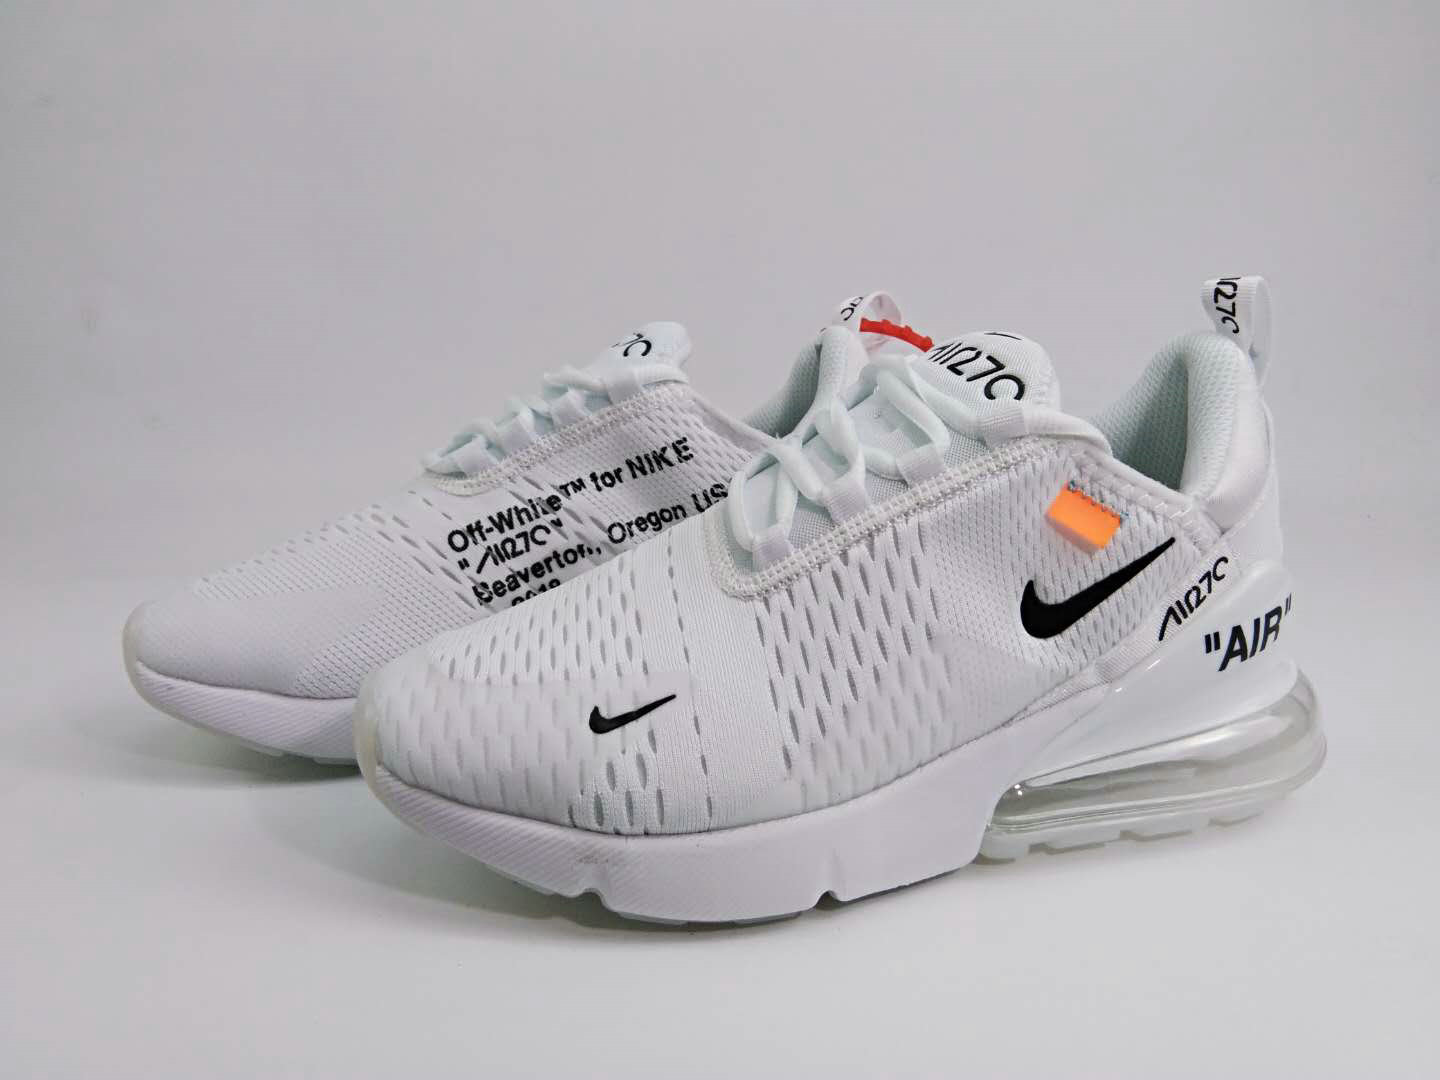 42733267a14a 2018 Nike The 10 OFF-WHITE Air Max 270 Triple White Cheap Wholesale Sale